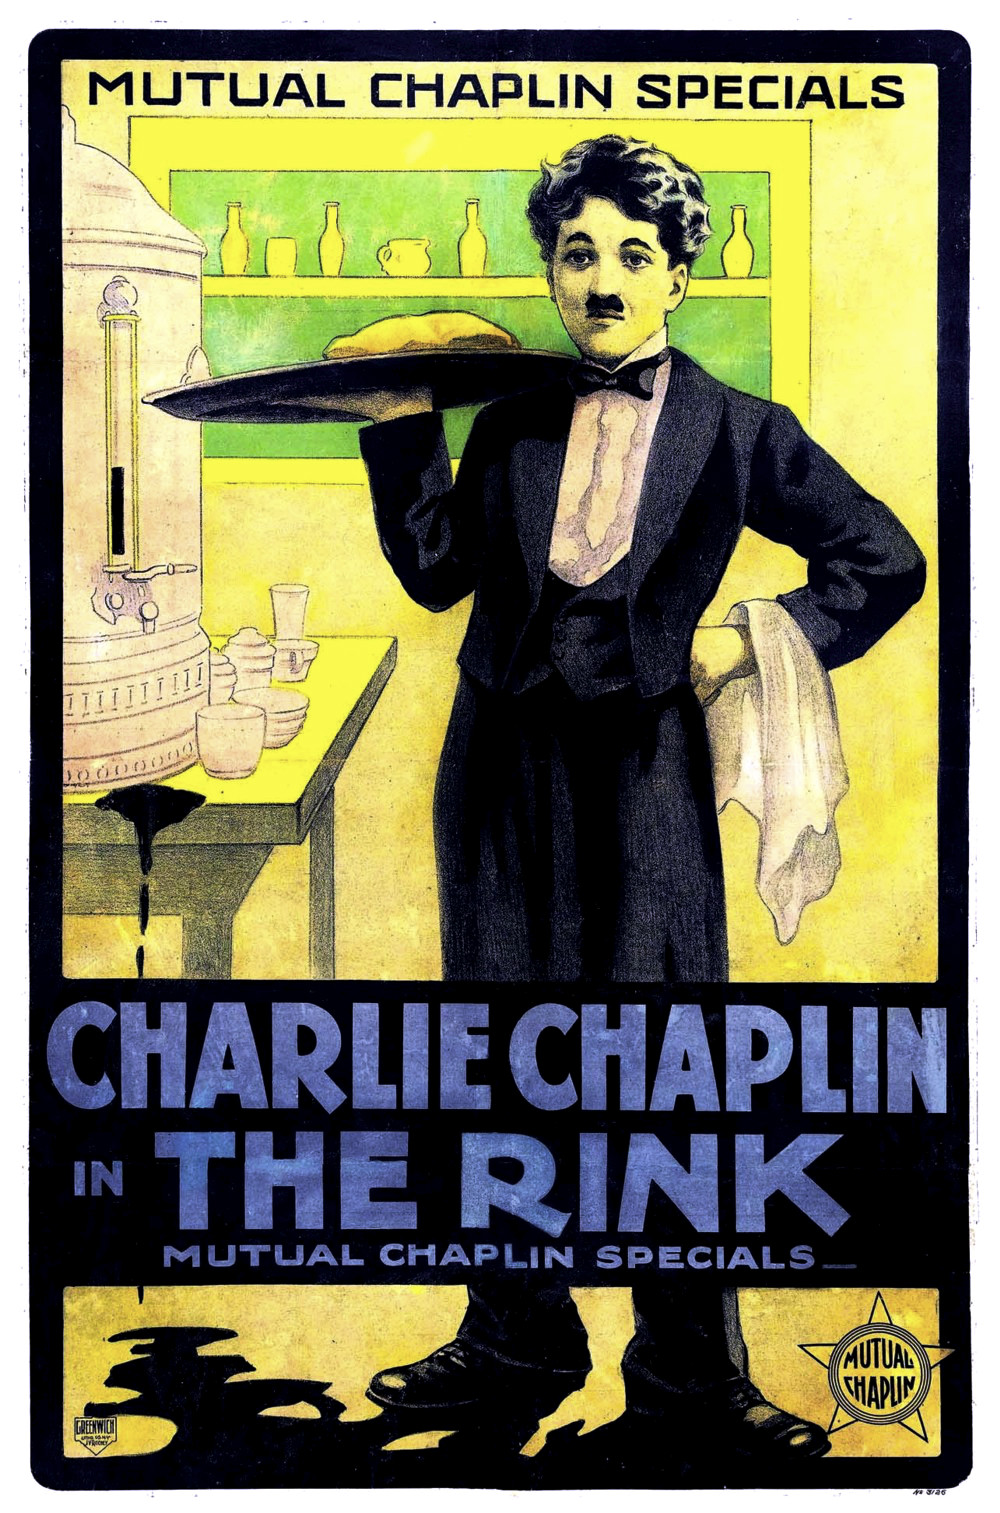 Charlie Chaplin in THE RINK